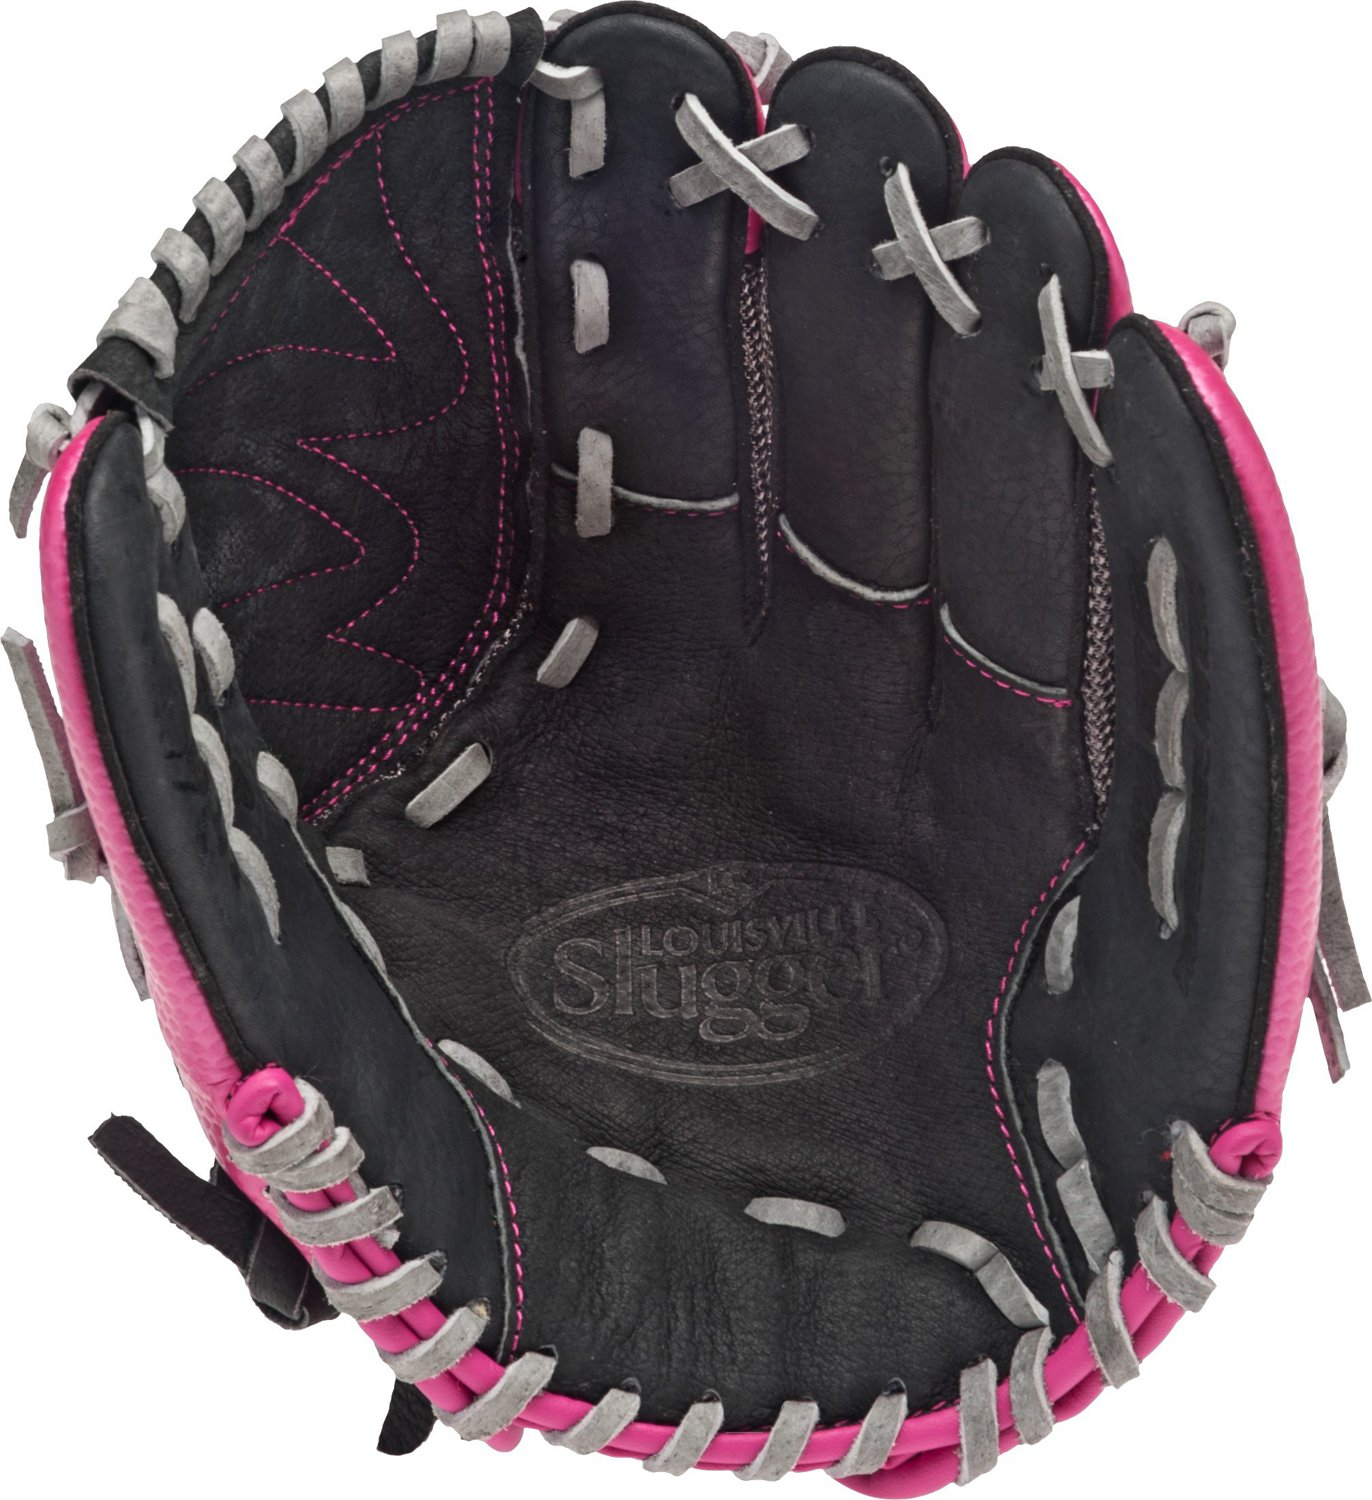 c2324bf105f Display product reviews for Louisville Slugger Youth Diva 10.5